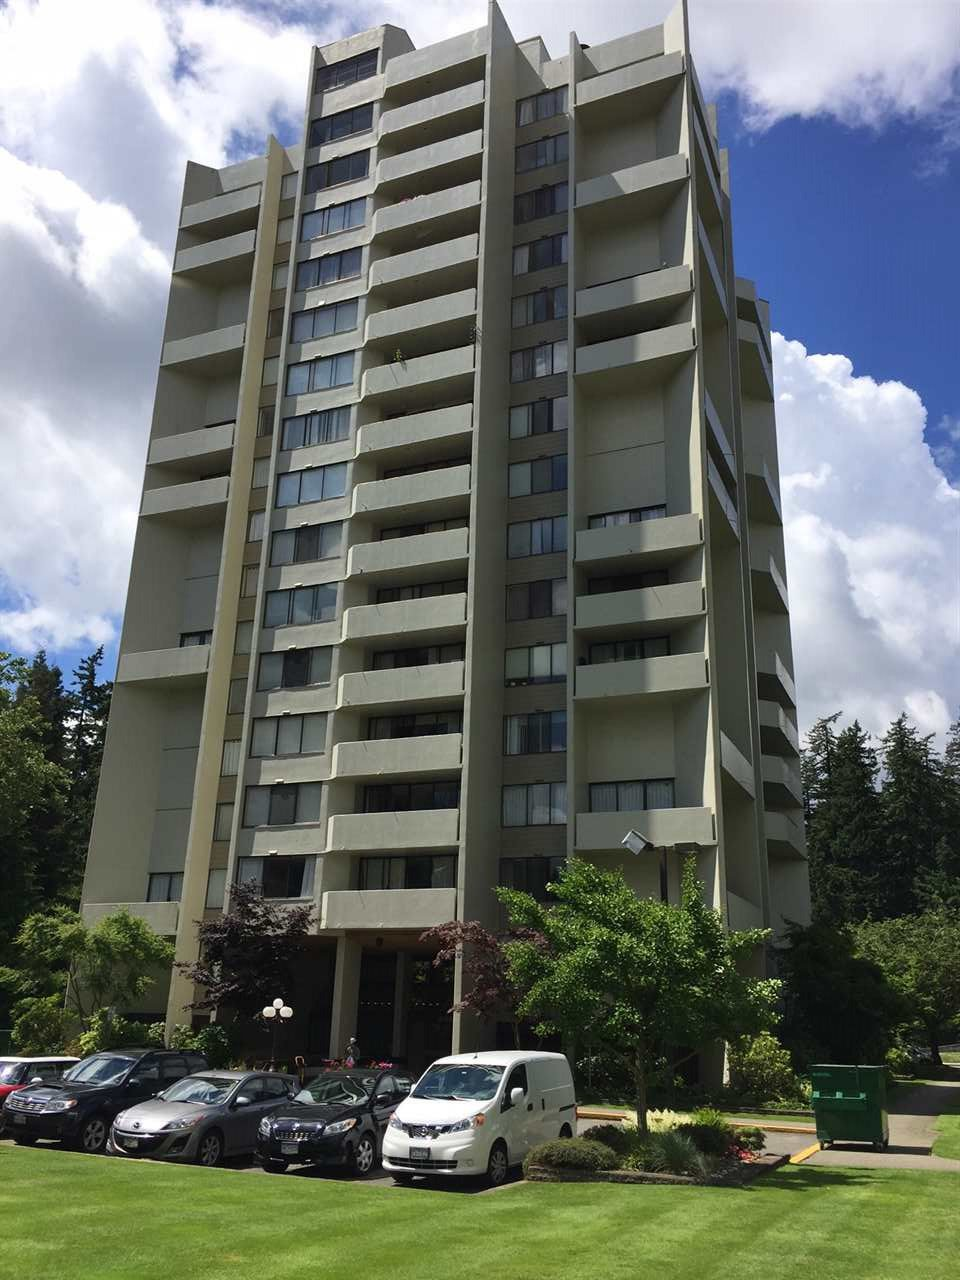 """Main Photo: 1606 4105 MAYWOOD Street in Burnaby: Metrotown Condo for sale in """"TIMES SQUARE"""" (Burnaby South)  : MLS®# R2178631"""